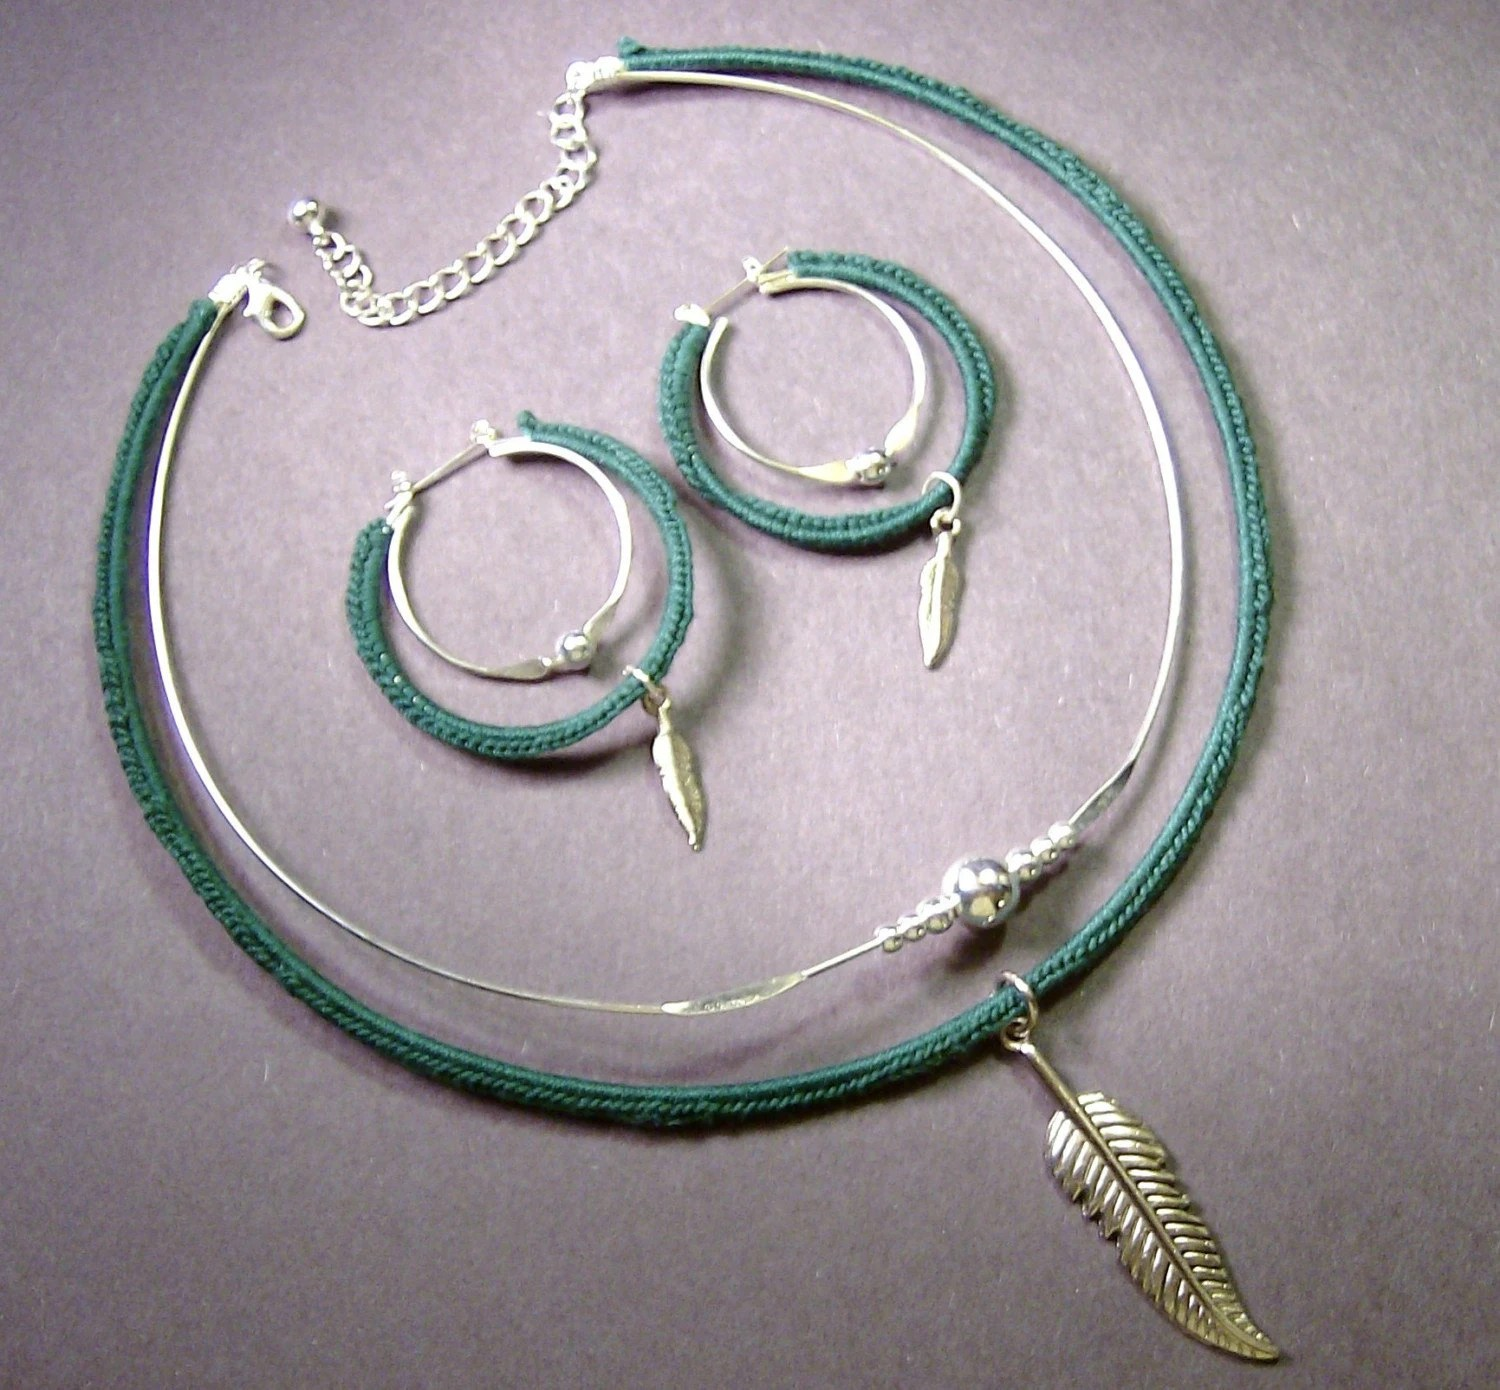 Crochet Choker Necklace and Earring Set With Feather Charm